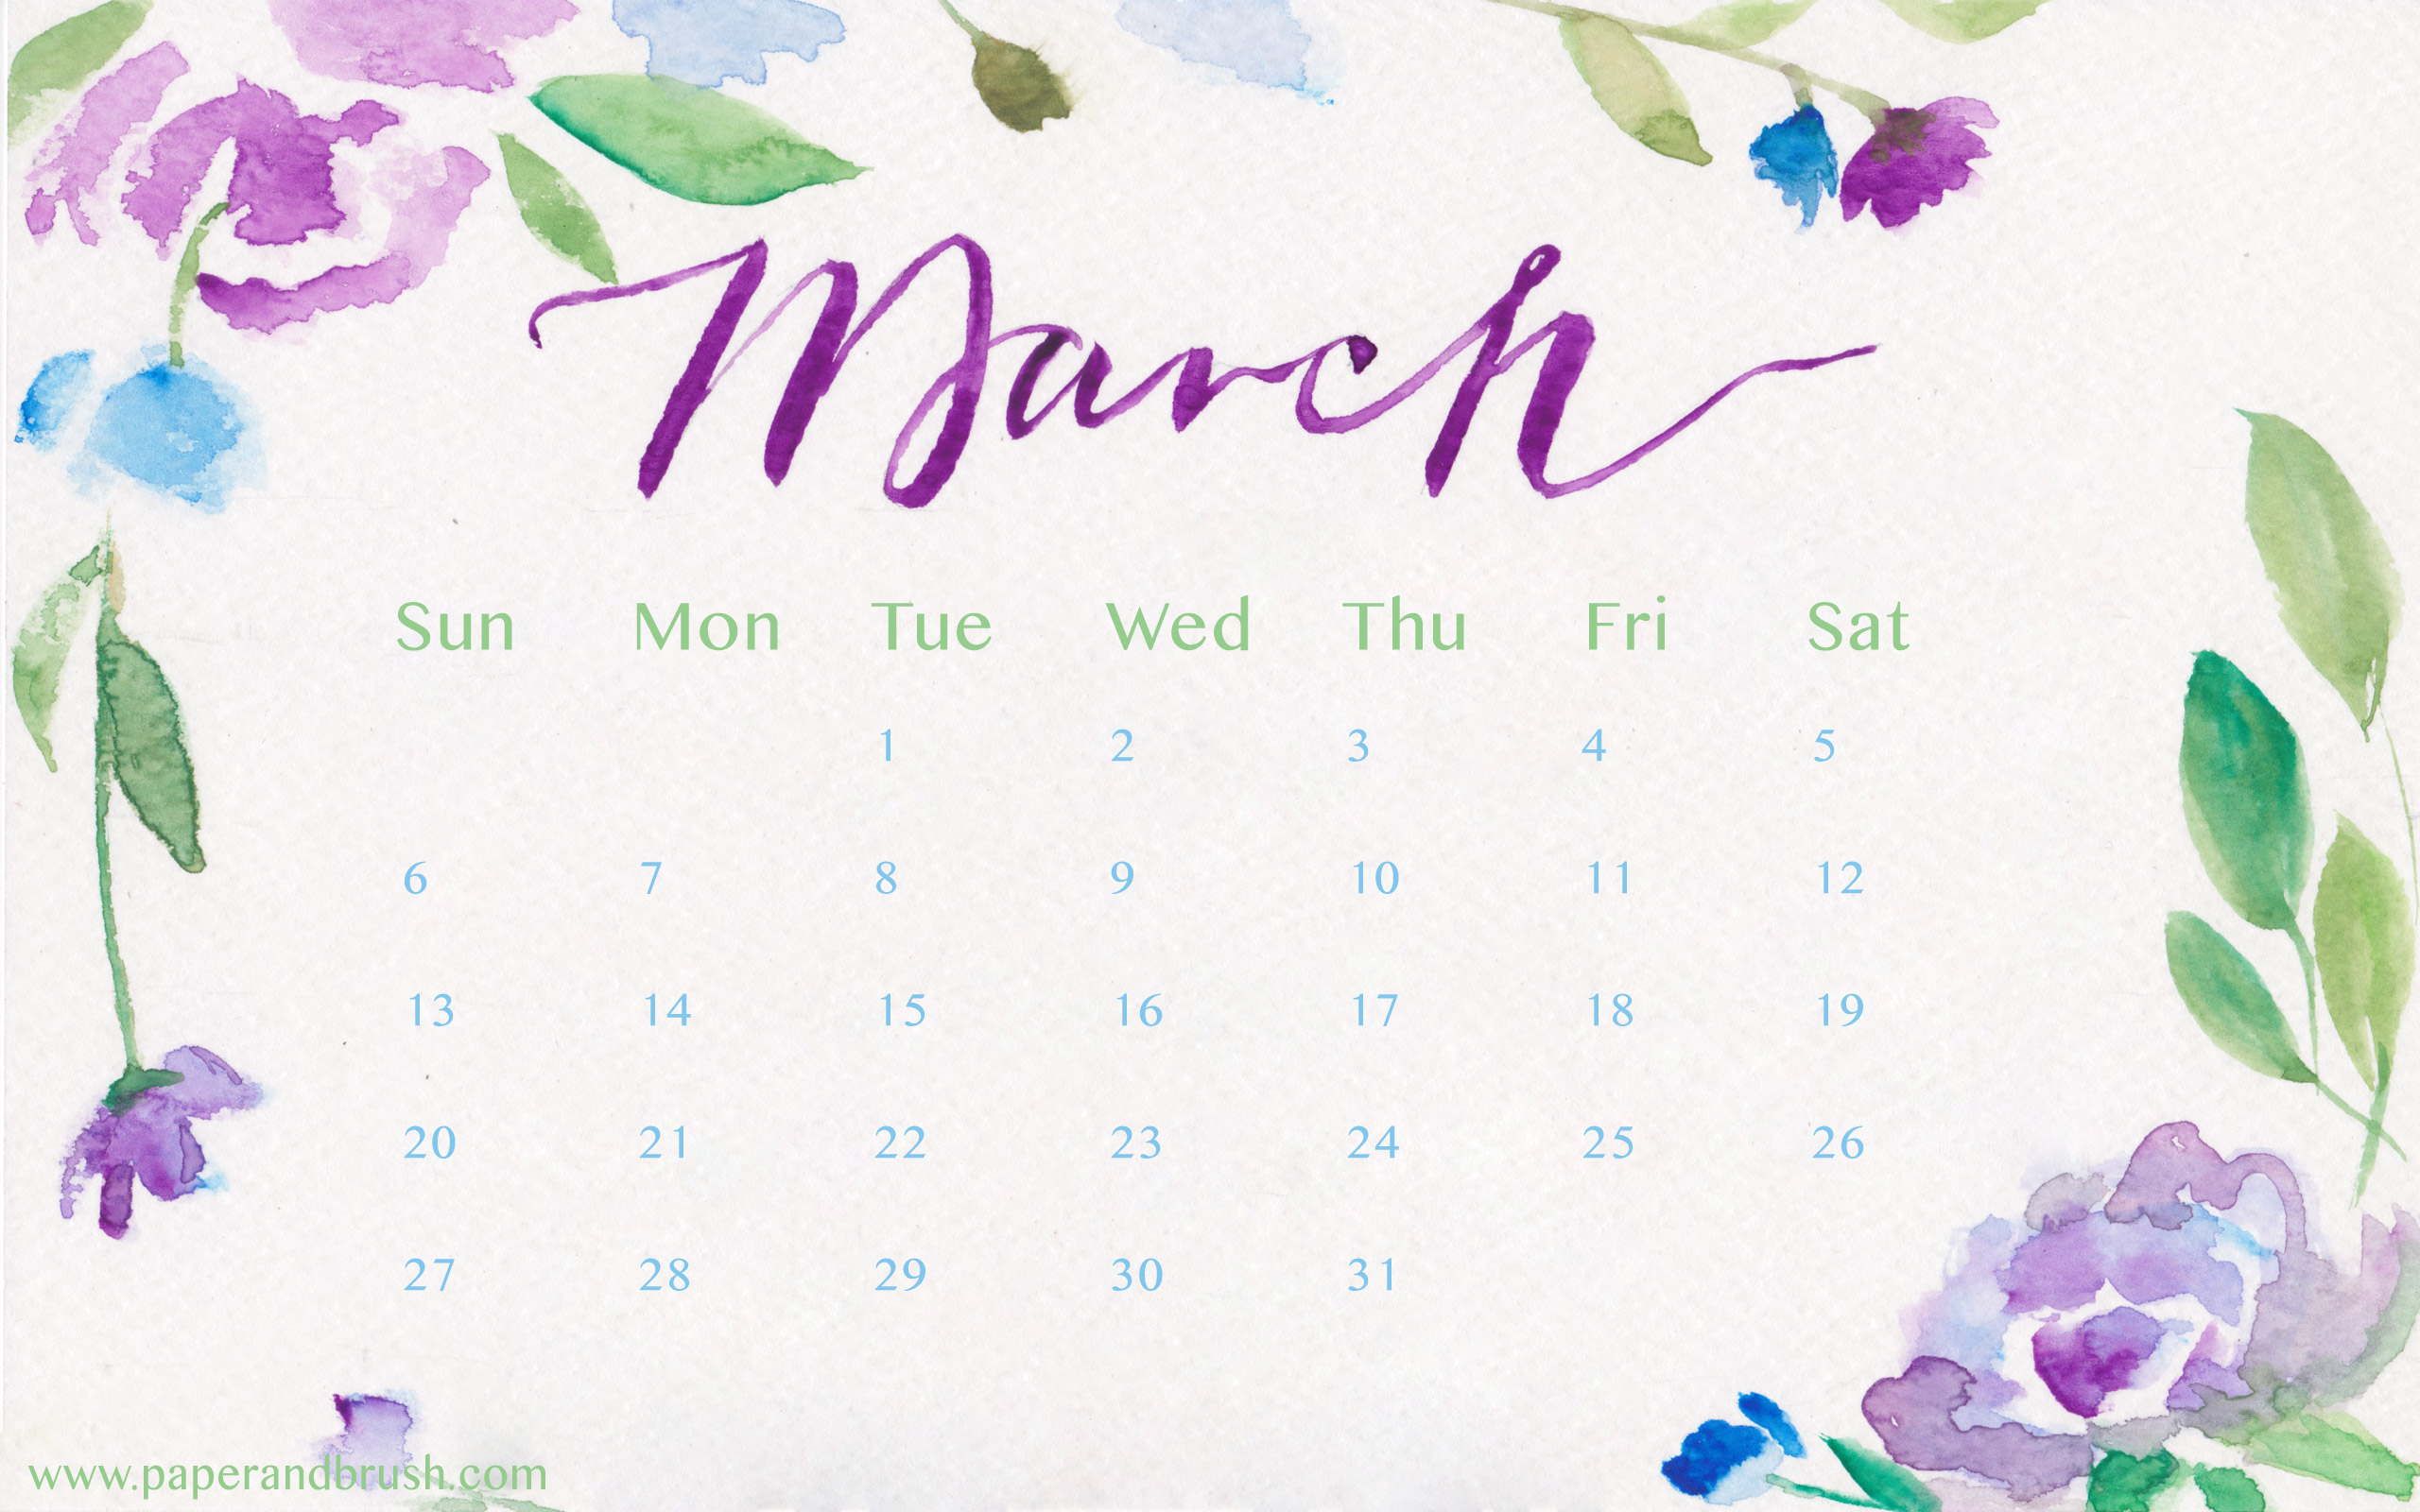 Top March 2016 Calendars Wallpapers 2560x1600